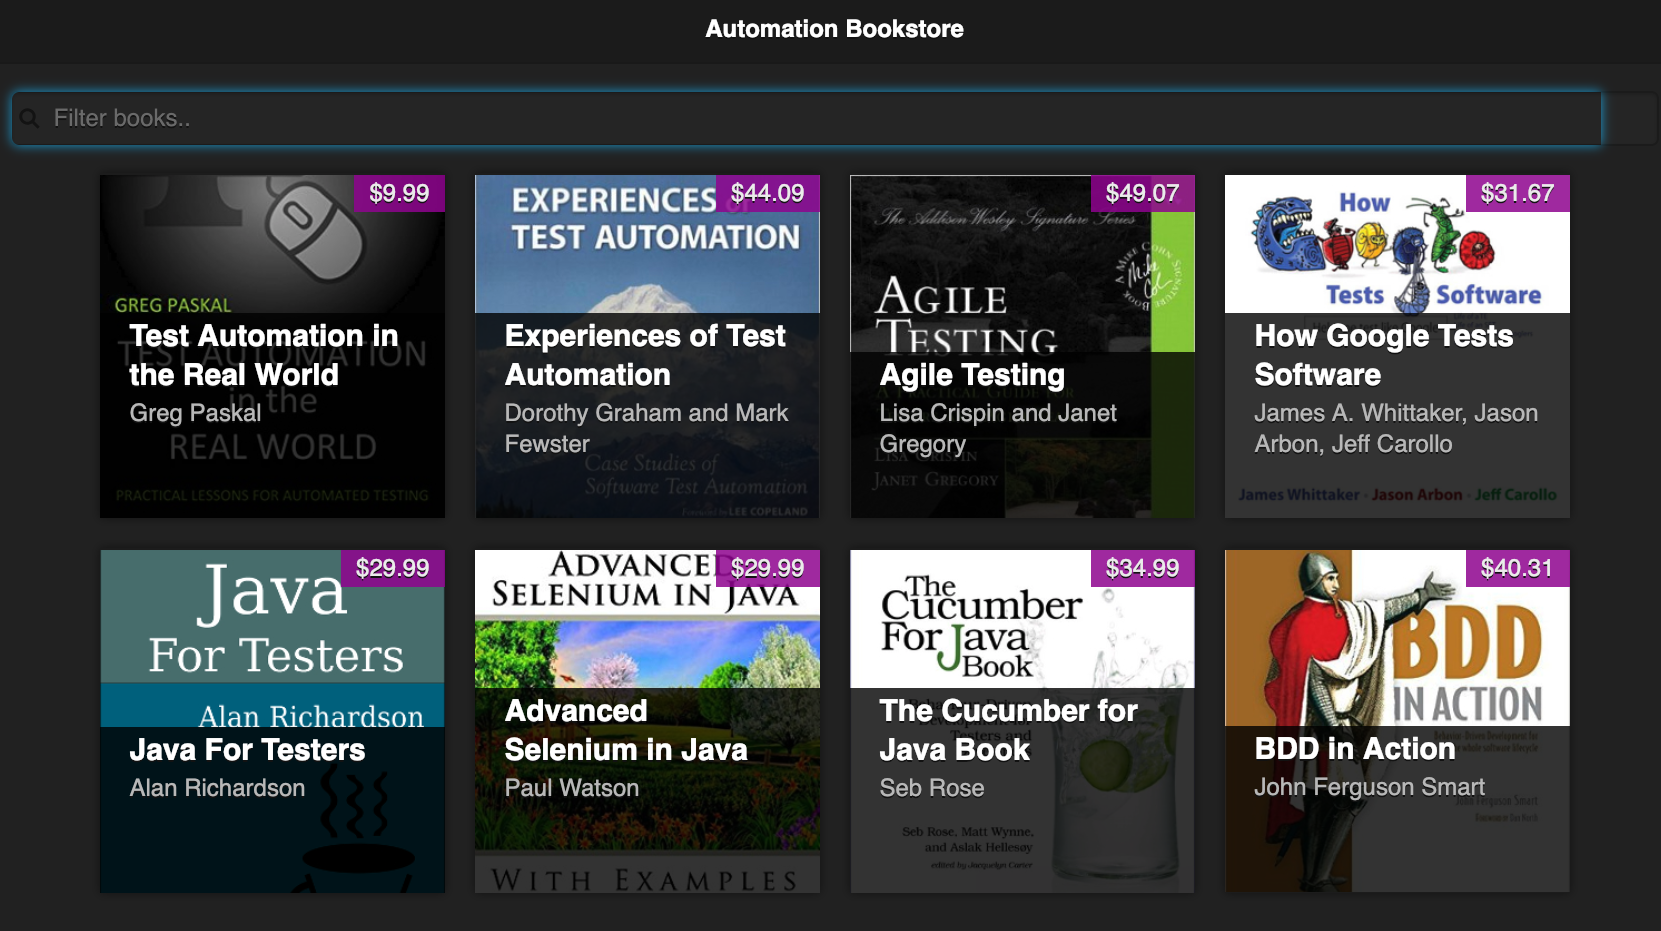 Automation Bookstore web app